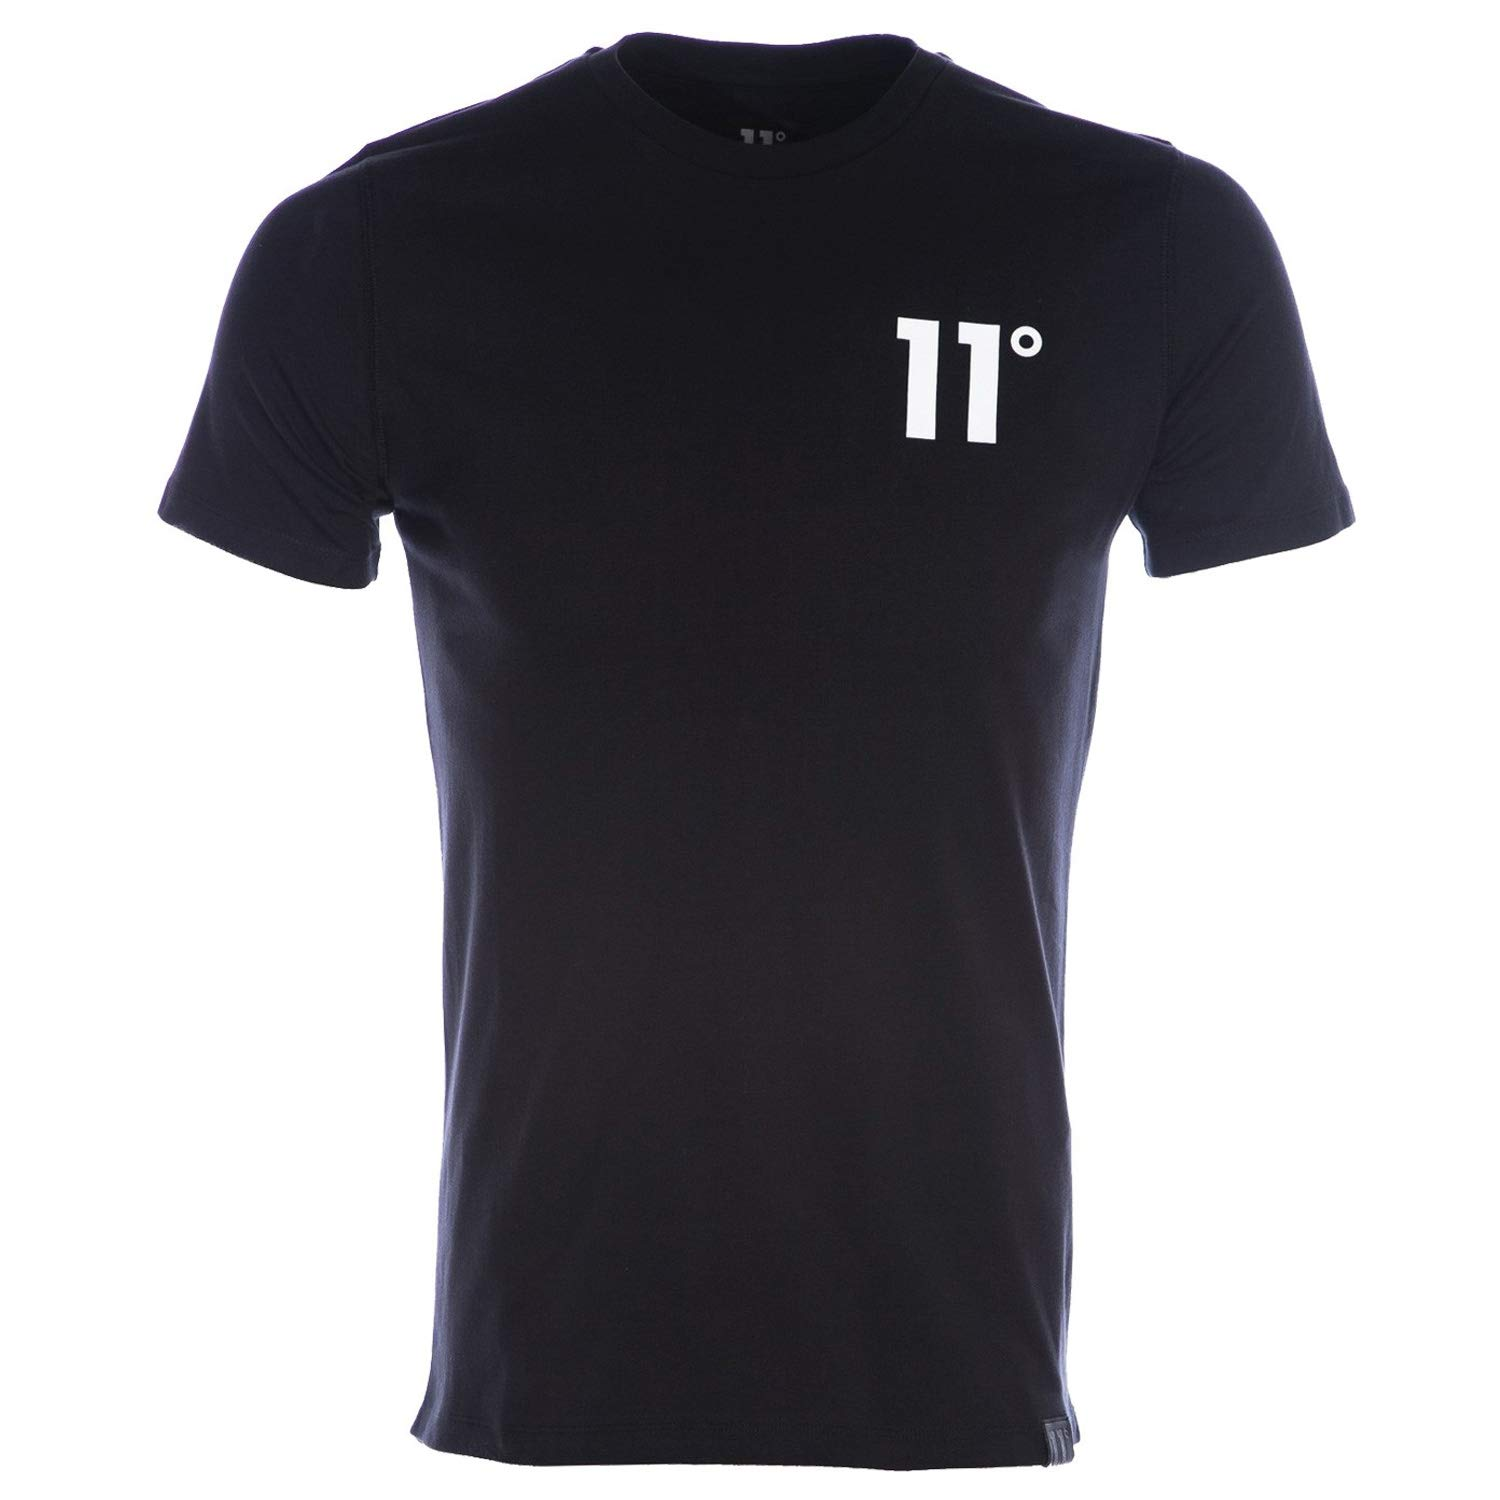 11 Degrees 11D-007 Core Half Sleeve T-Shirt - Black